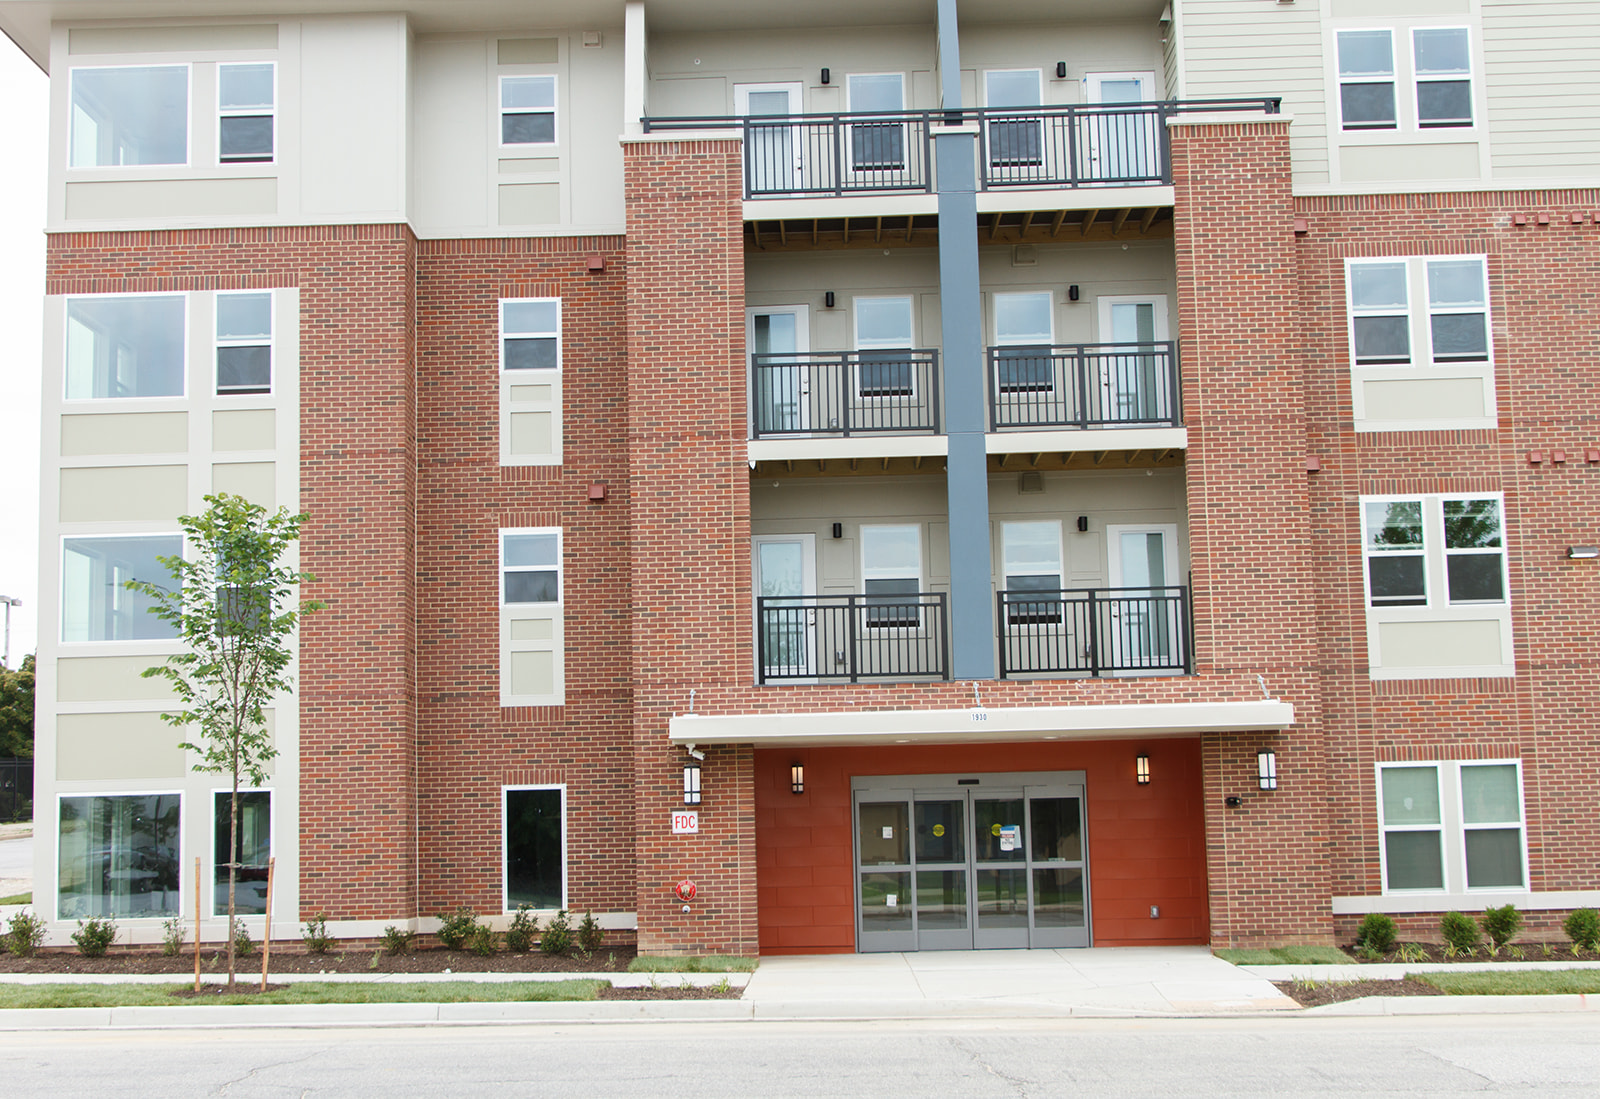 New Shiloh Village II Family Housing